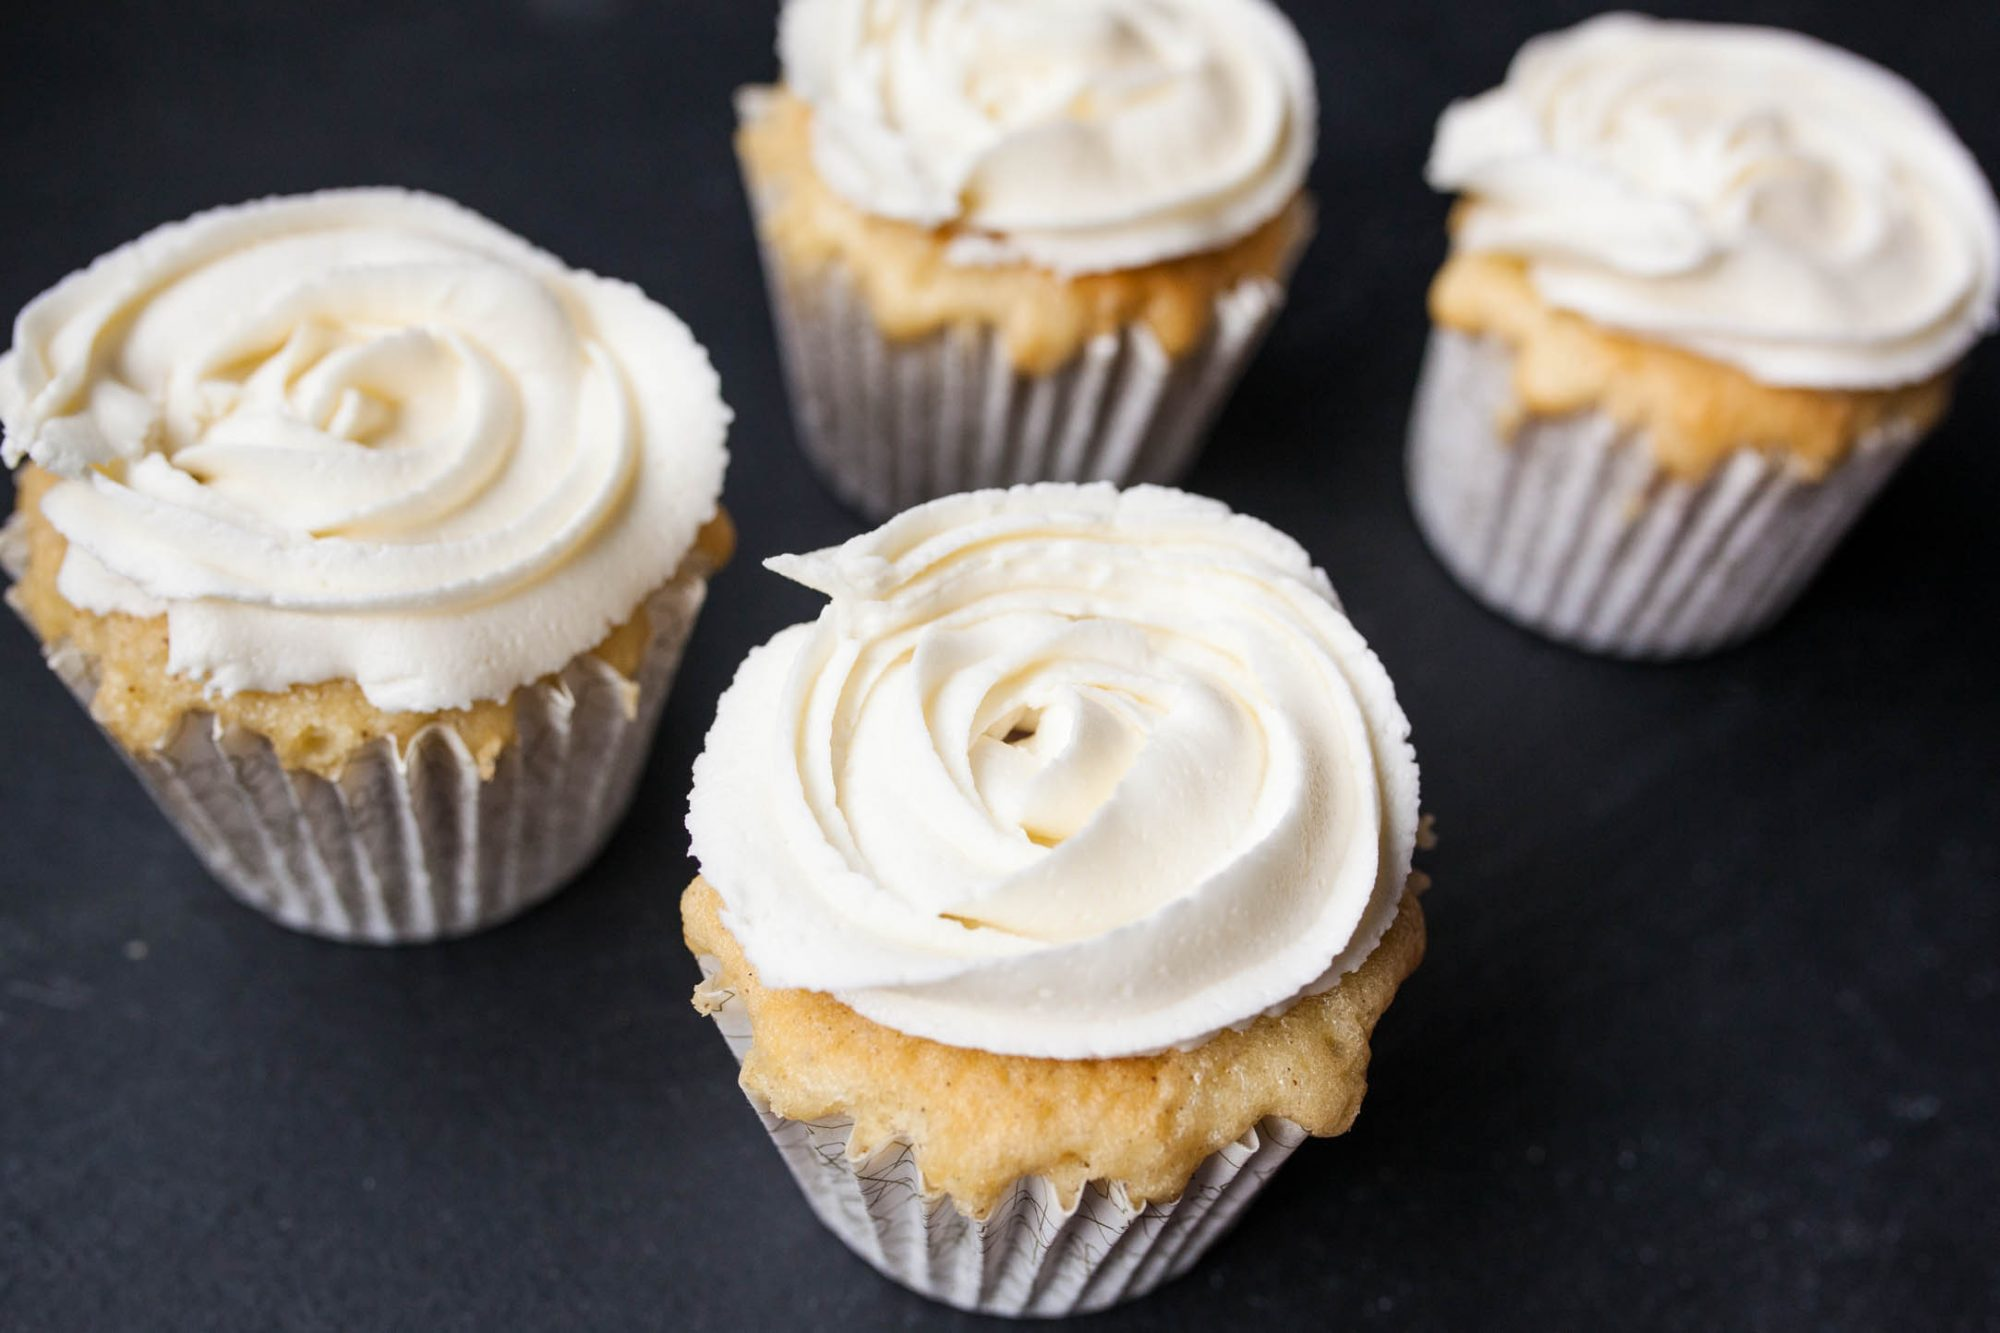 cupcakes with white buttercream